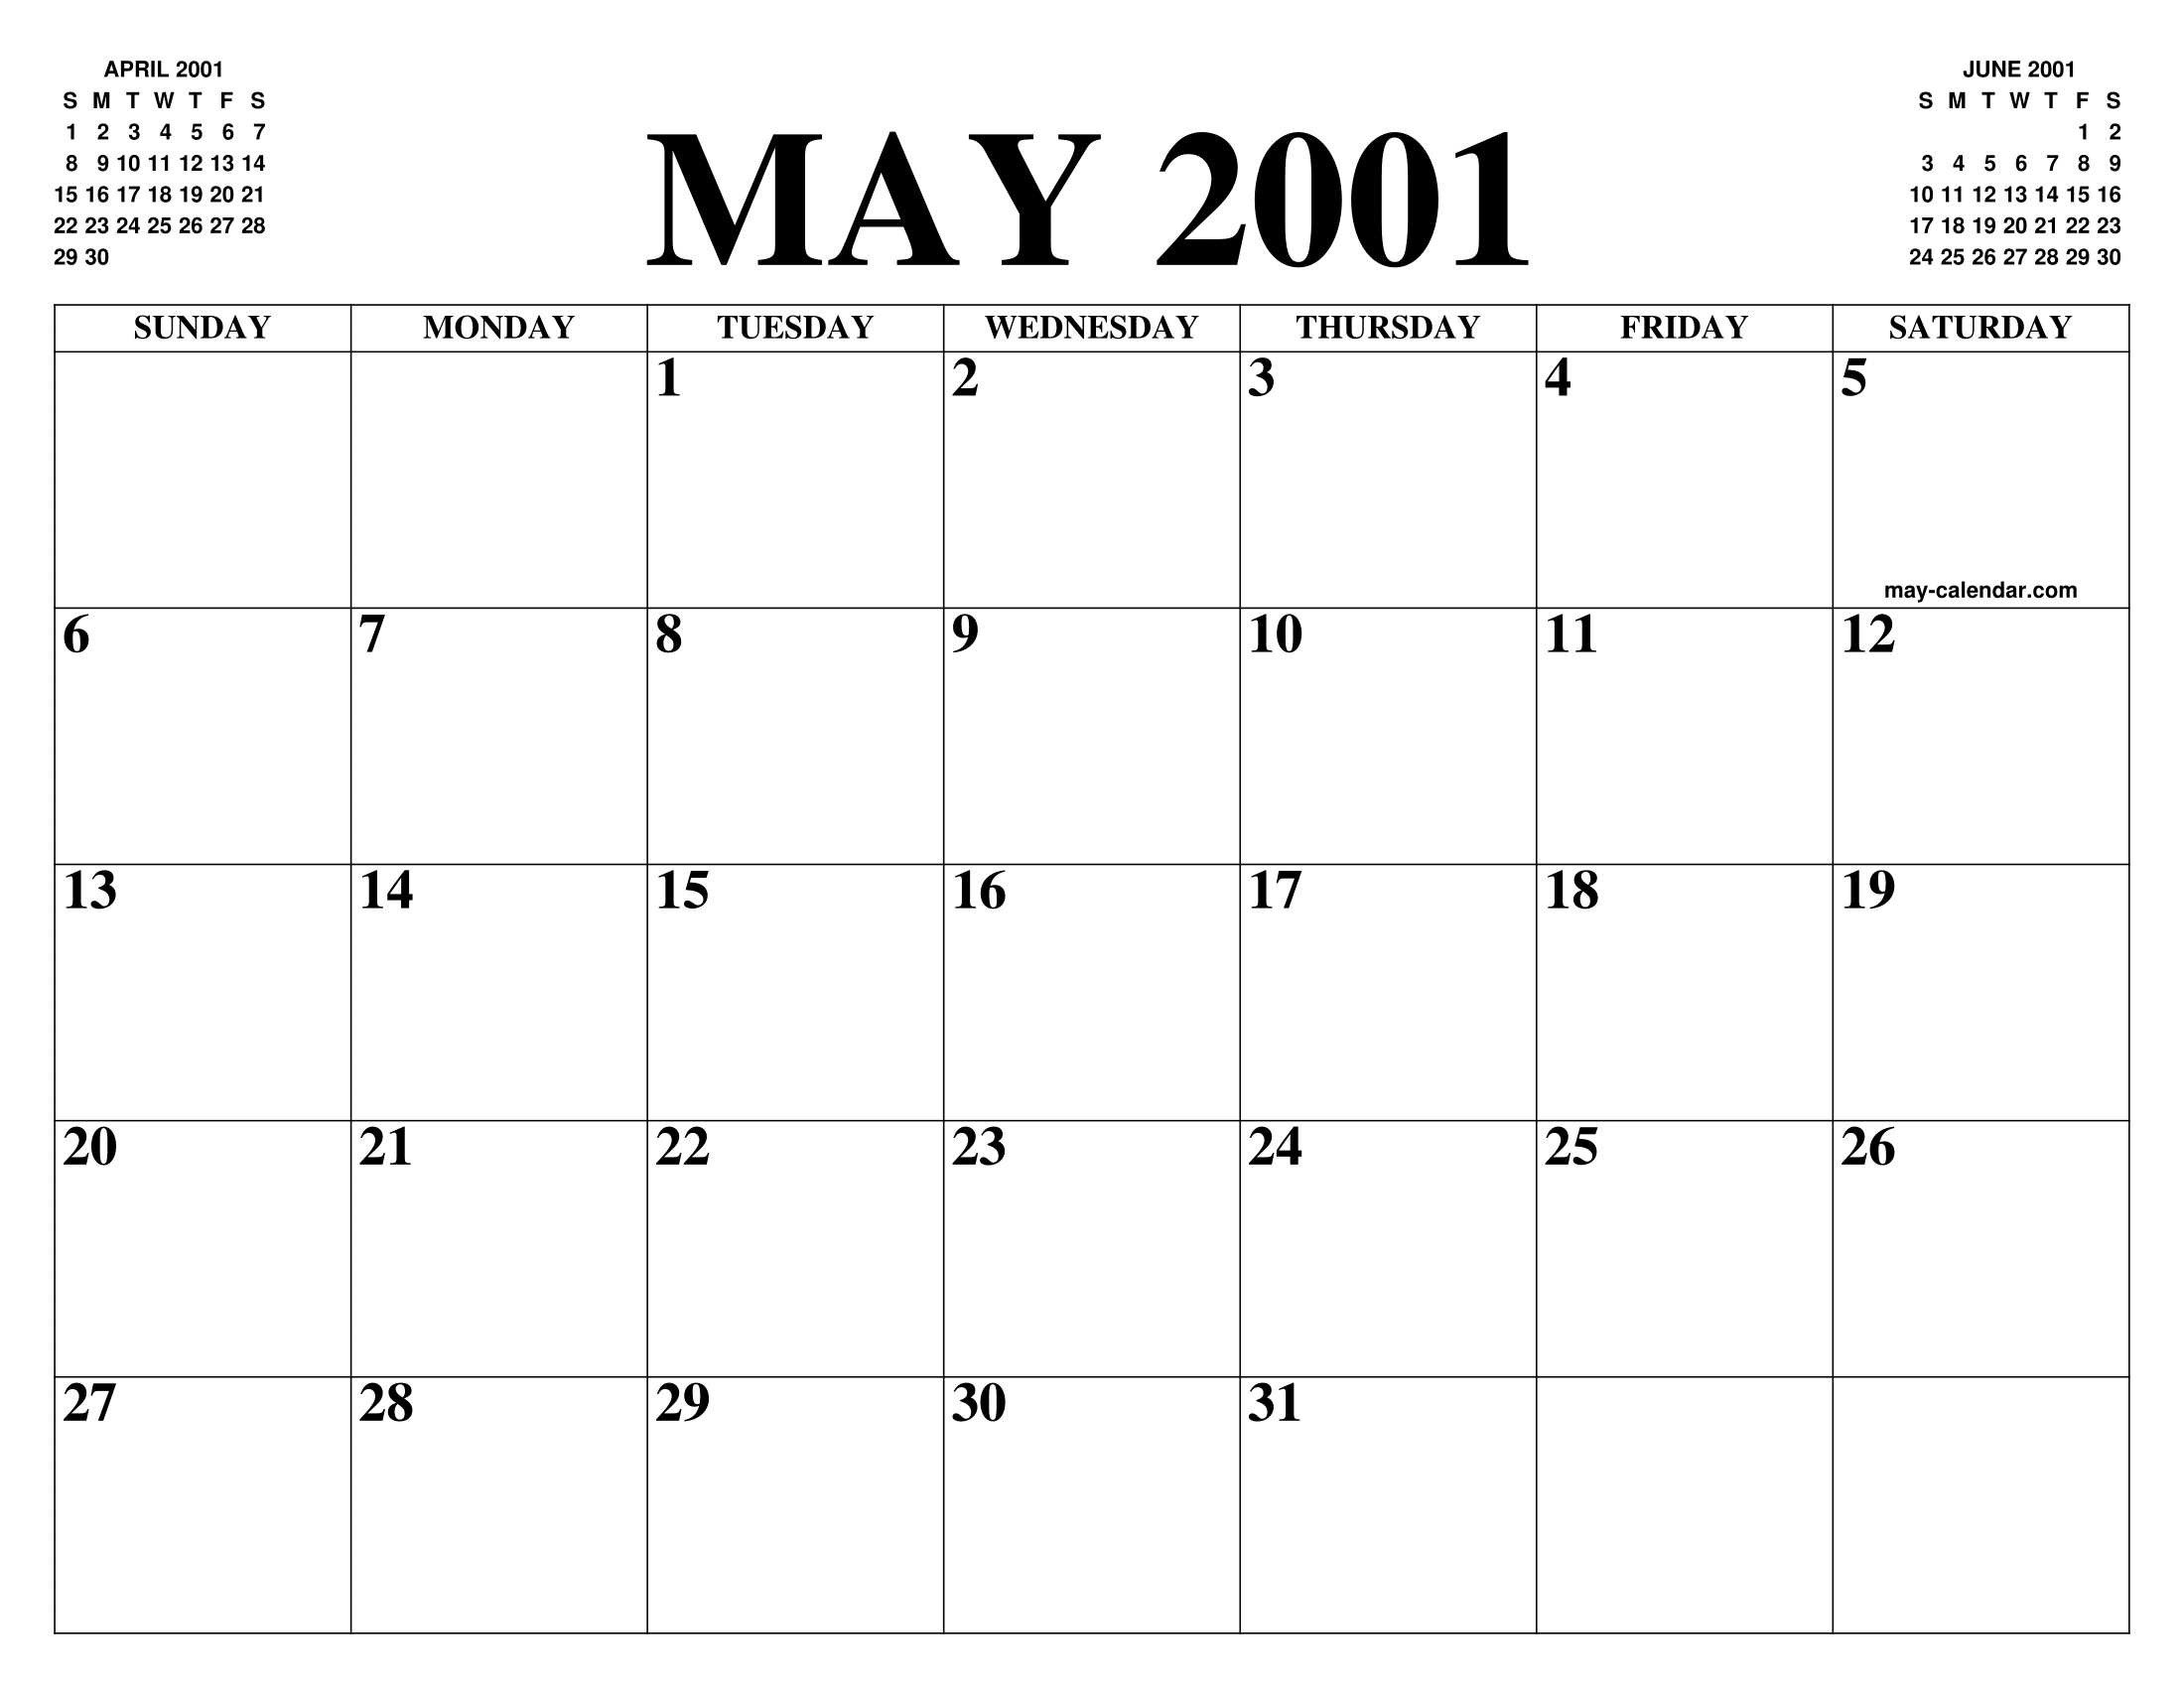 MAY 2001 CALENDAR OF THE MONTH: FREE PRINTABLE MAY CALENDAR